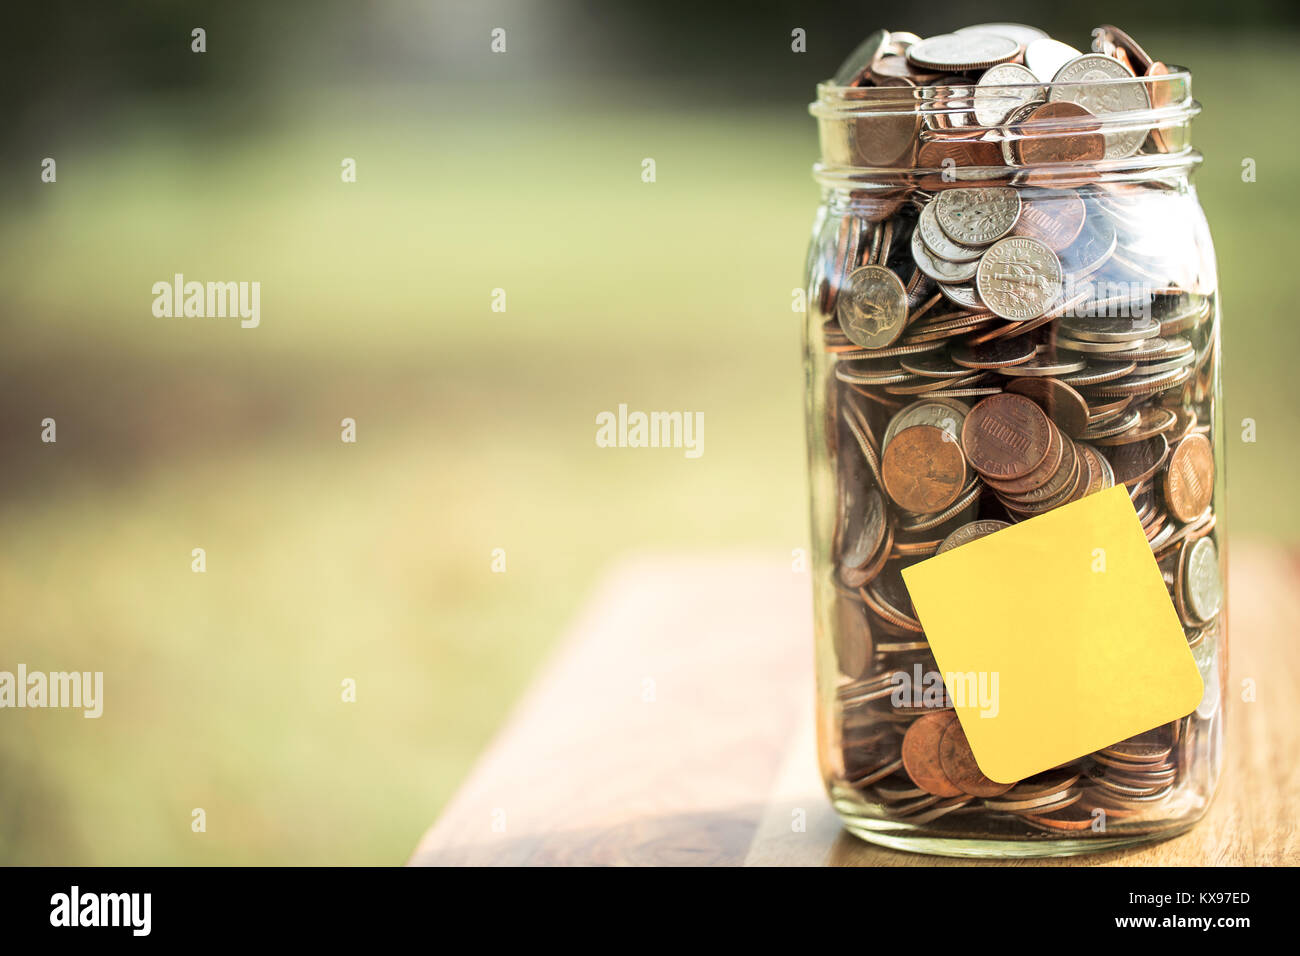 Mony jar outside with copy space. - Stock Image